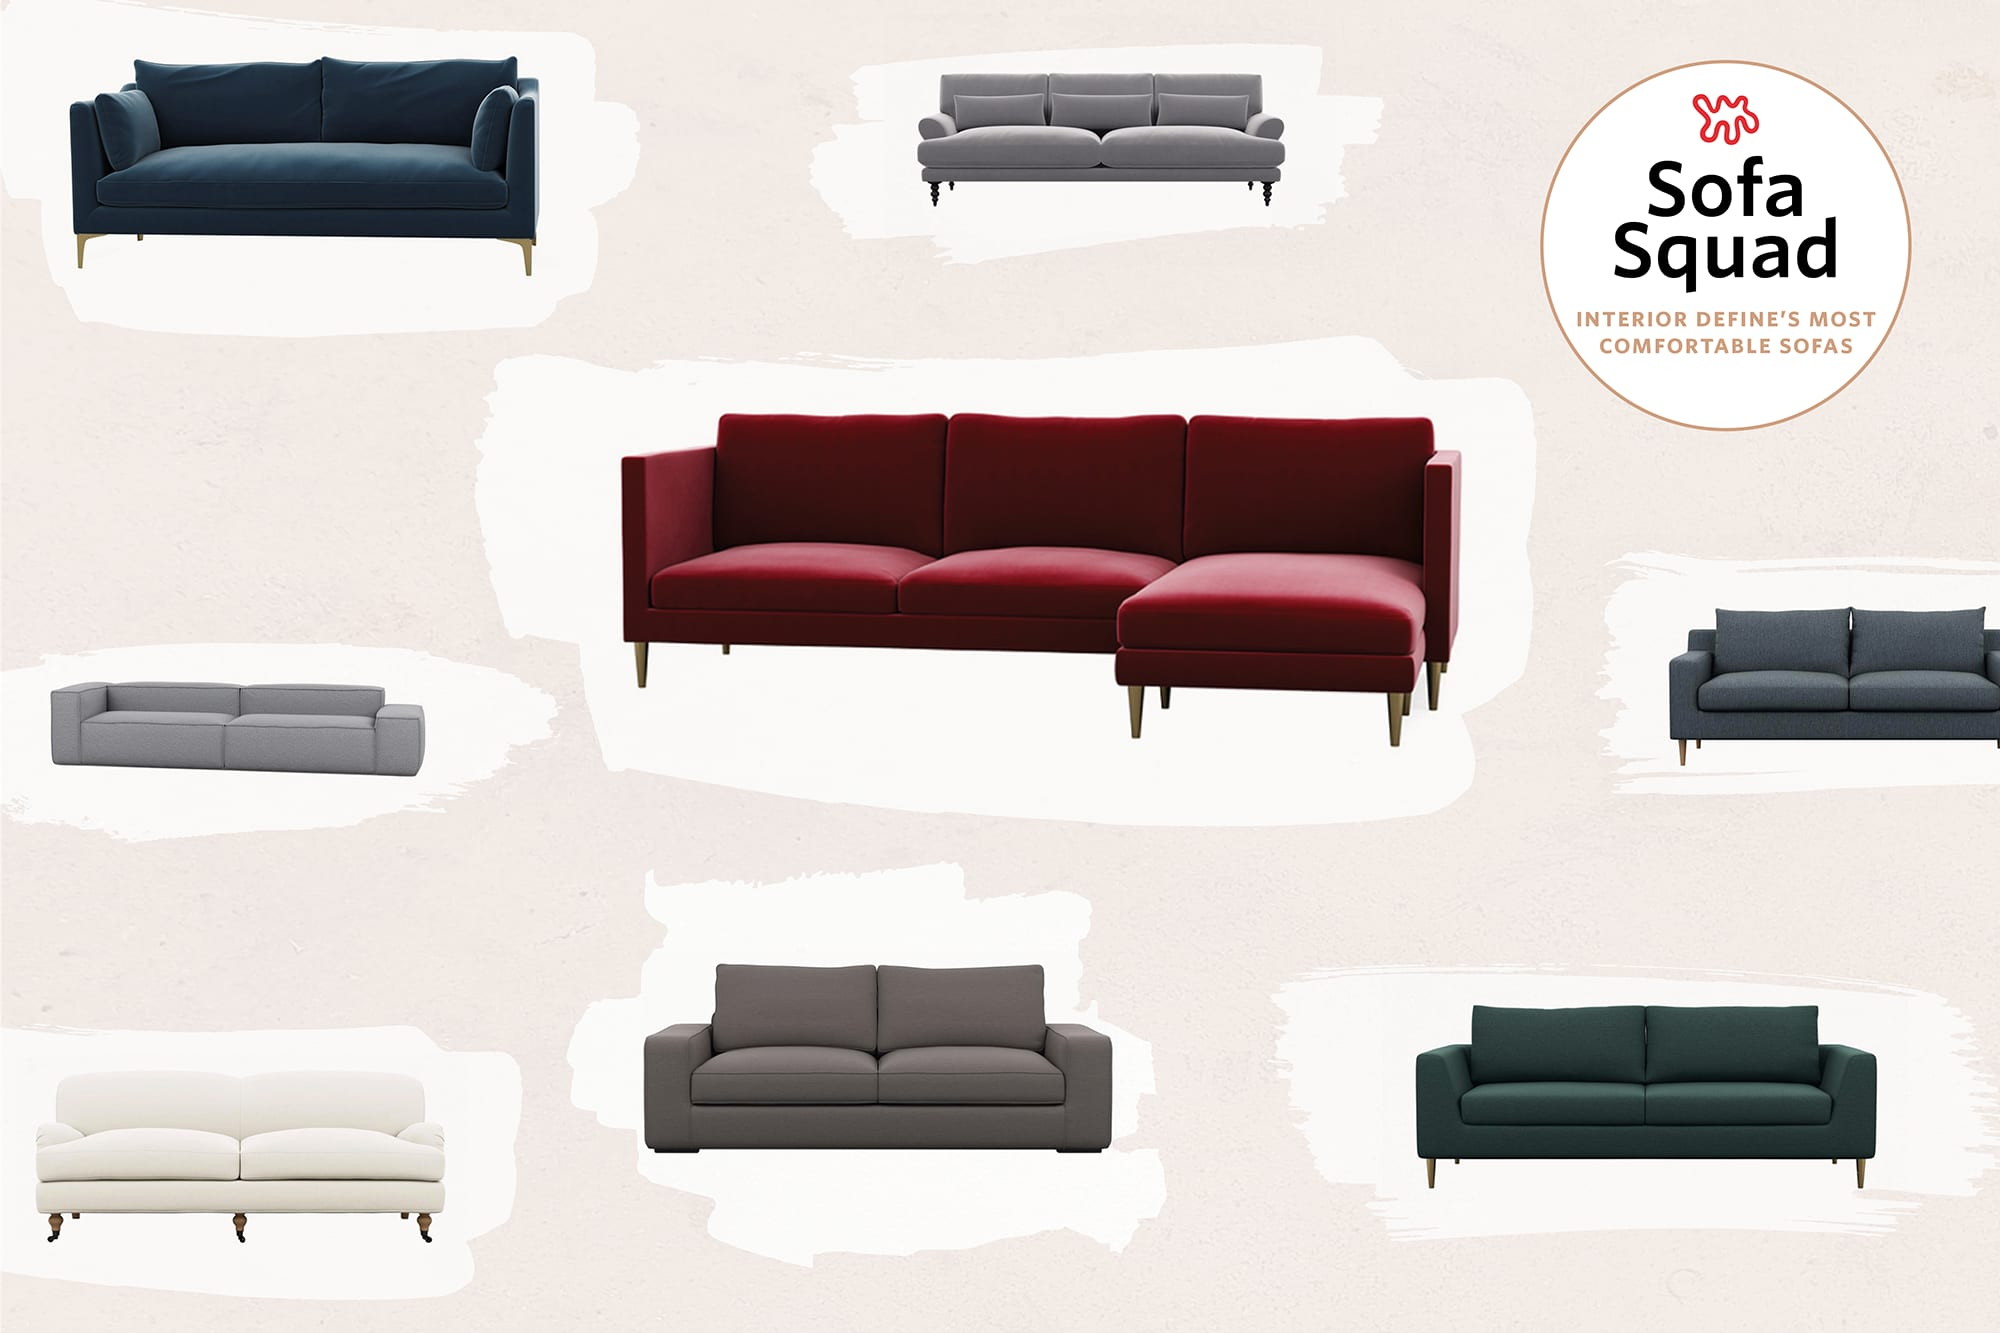 591af1ba2d18 Reviewed  The Most Comfortable Sofas at Interior Define